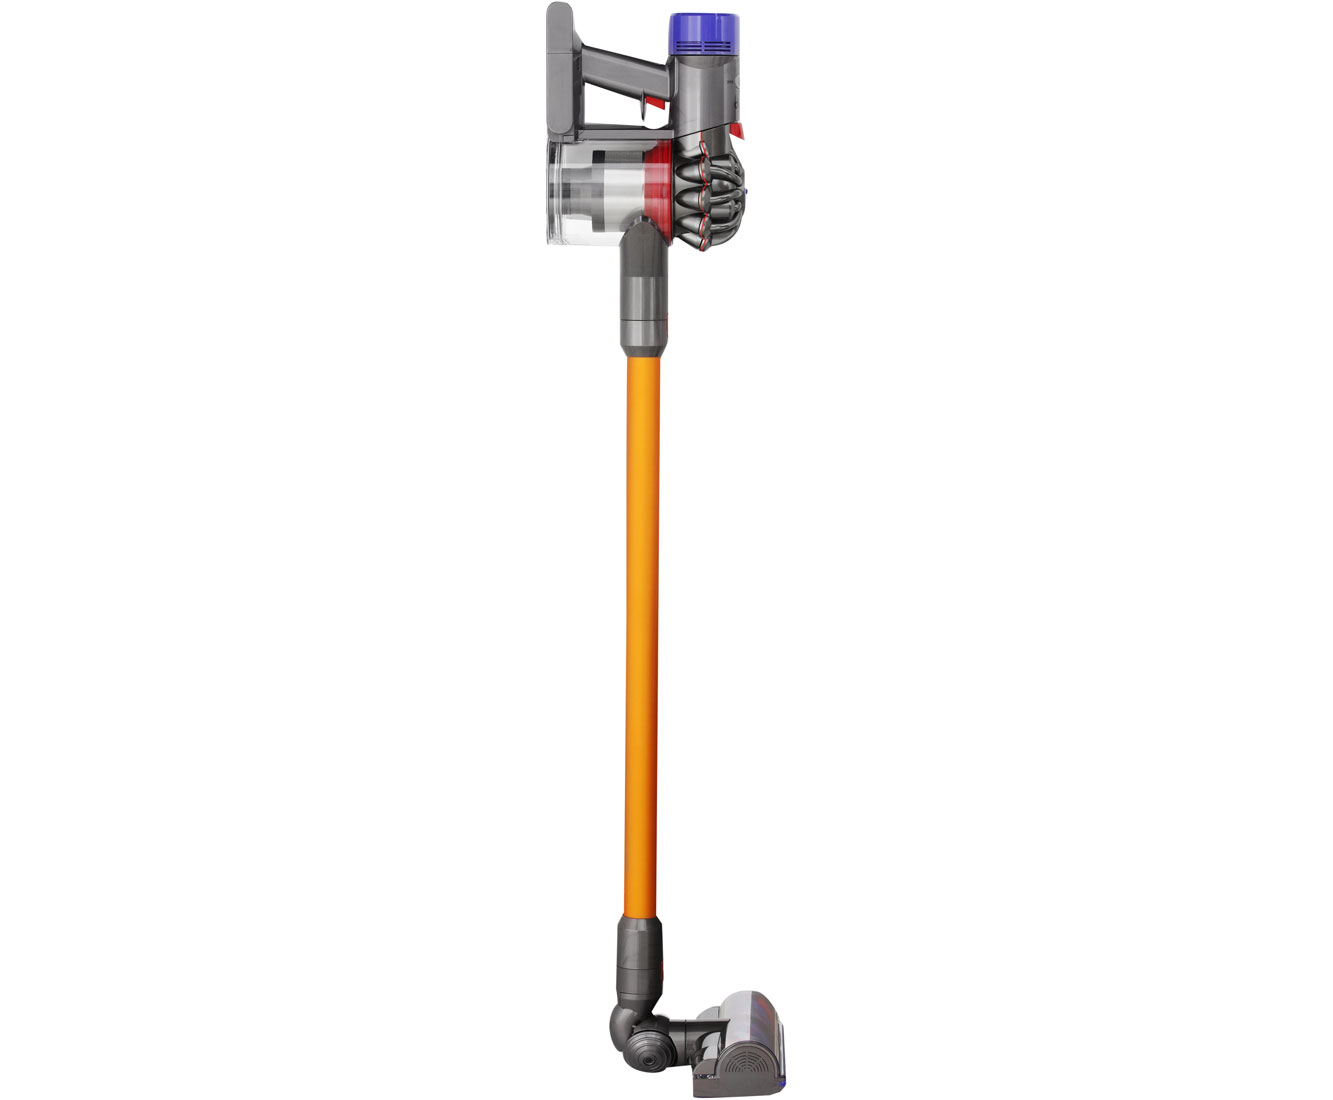 dyson v8 absolute stielstaubsauger freistehend gelb ebay. Black Bedroom Furniture Sets. Home Design Ideas